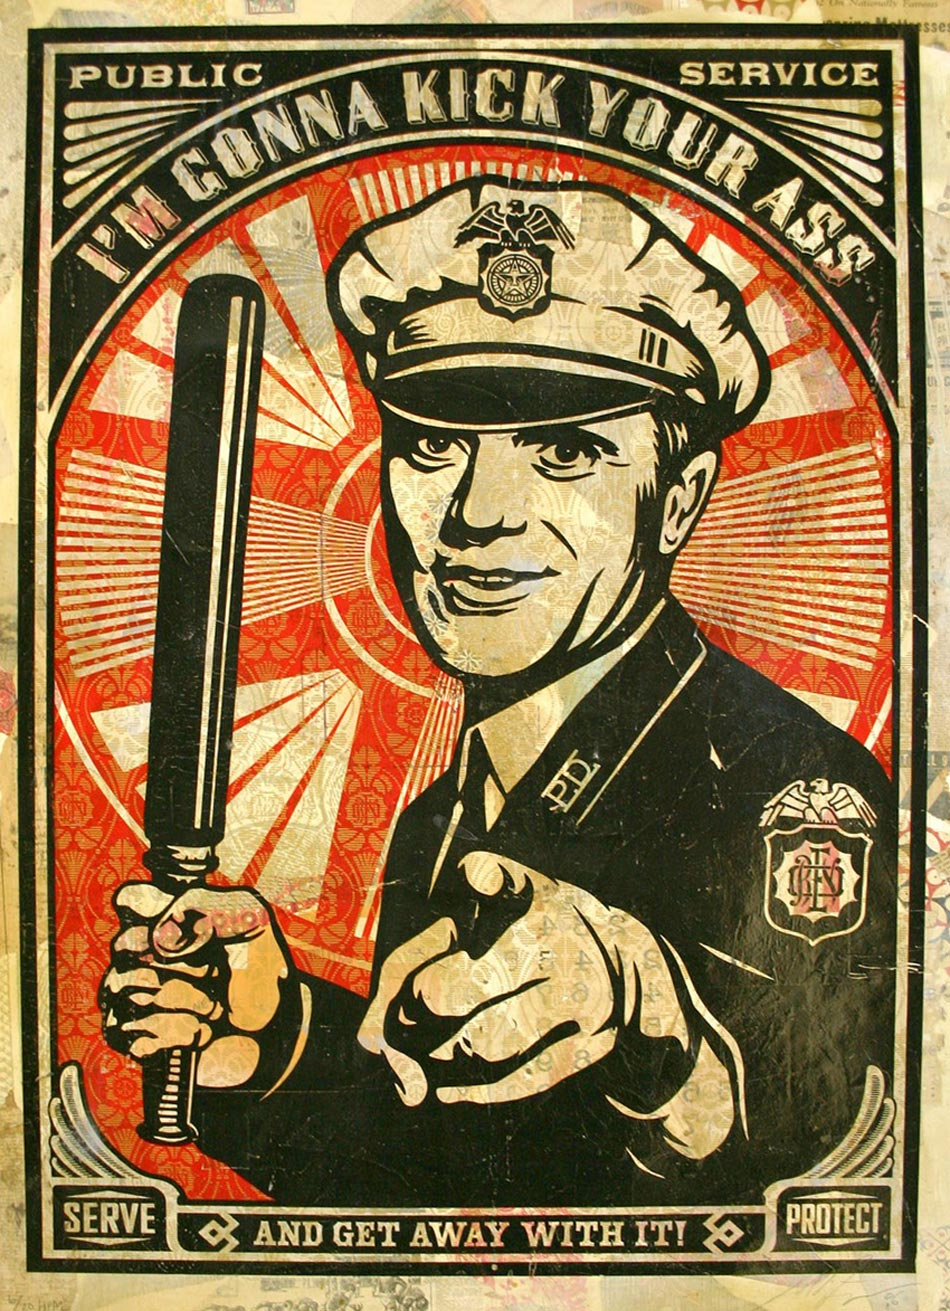 Police Service: On Your Face